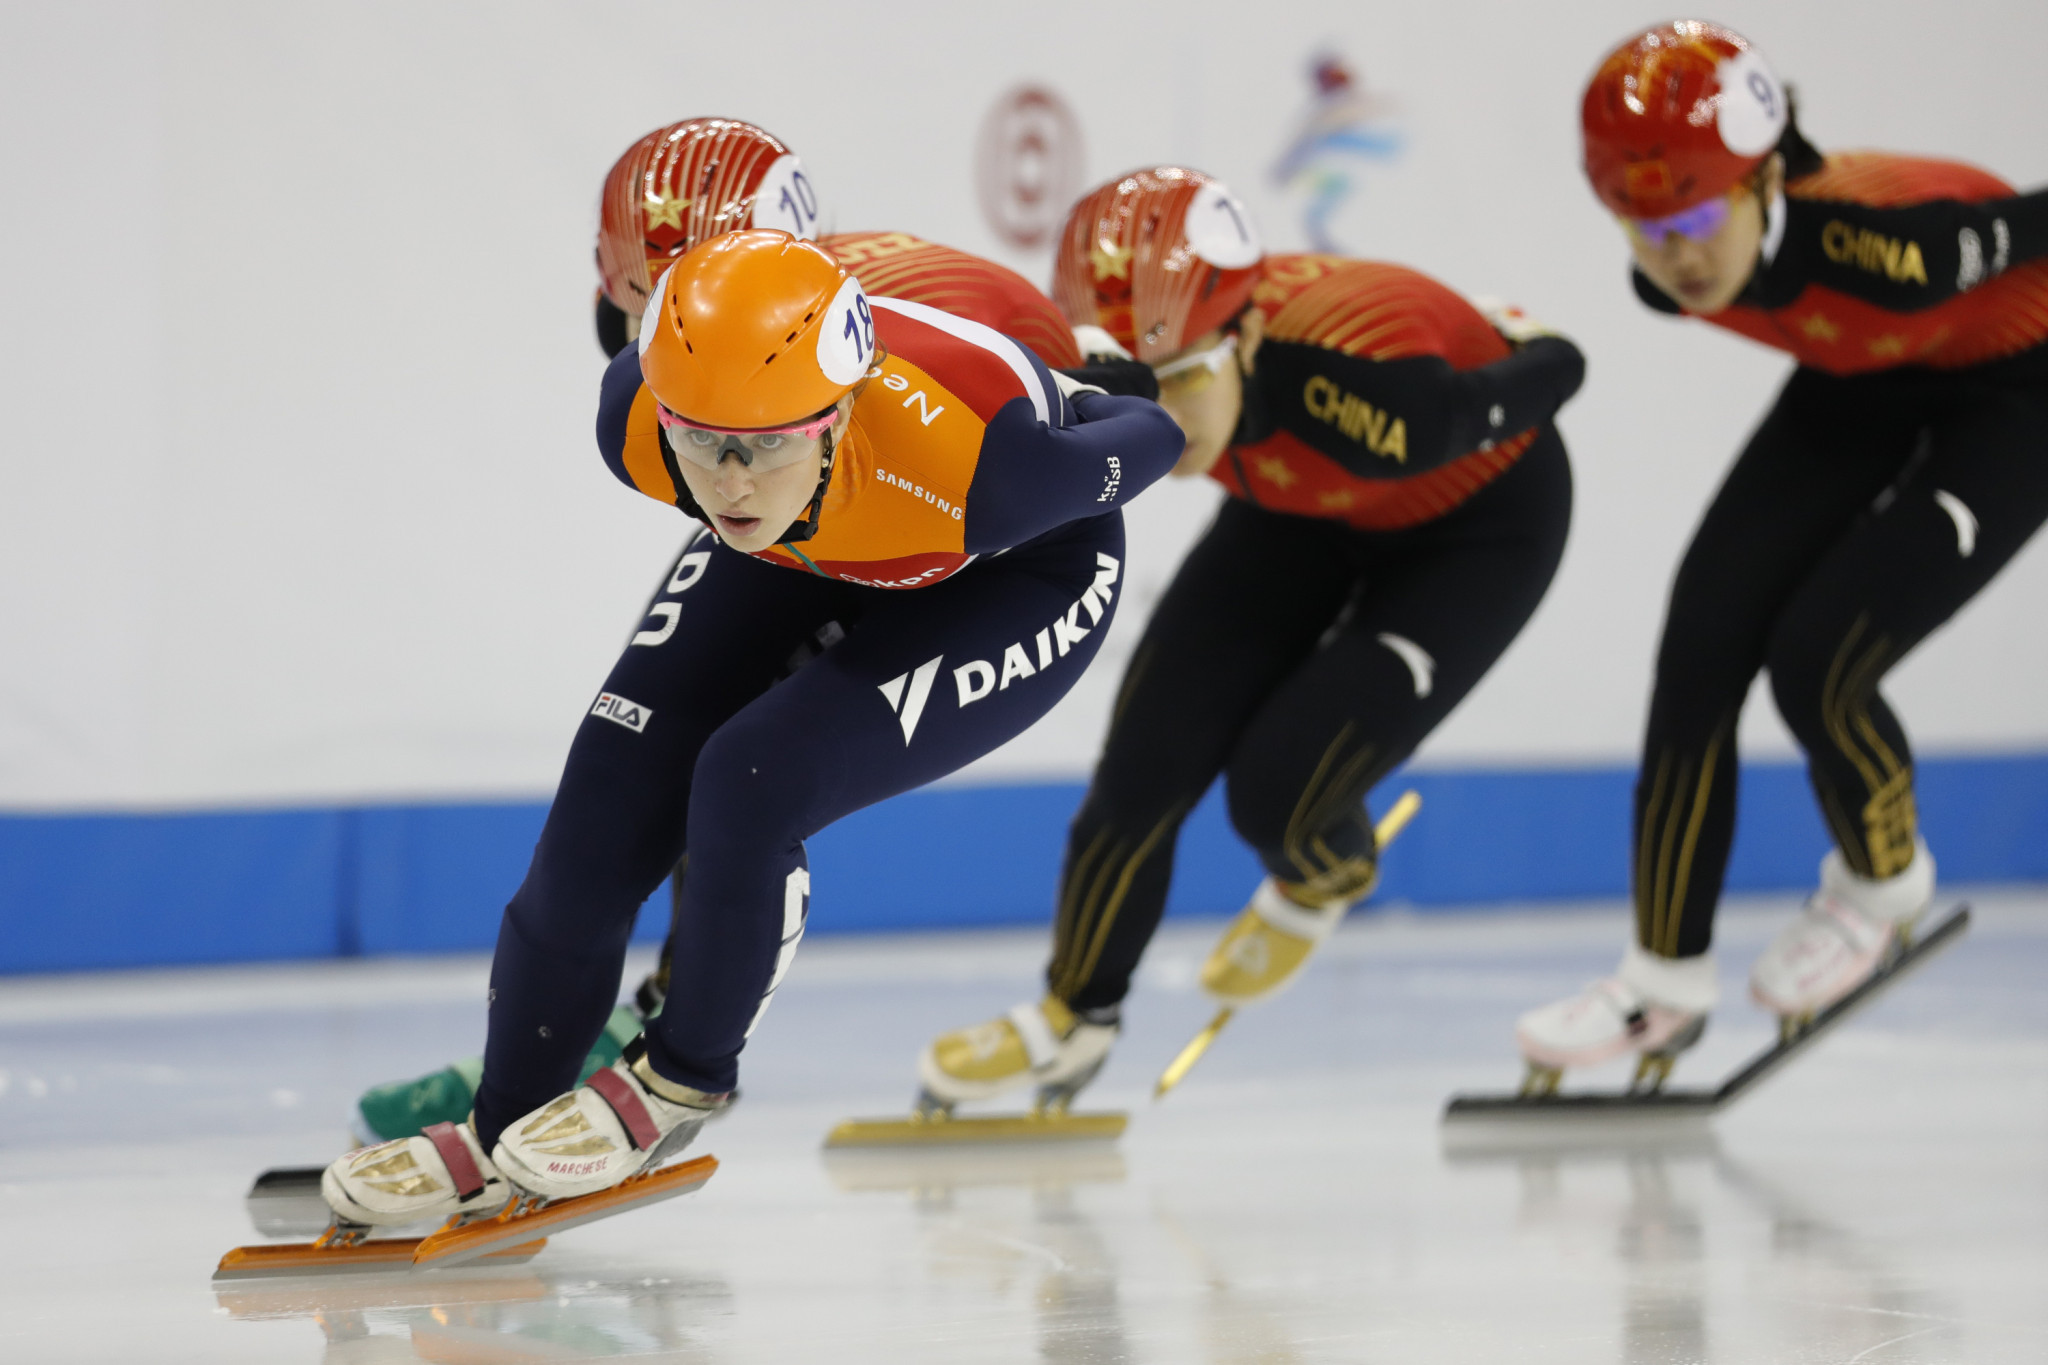 Schulting wins gold and silver on final night of ISU Short Track World Cup in Shanghai